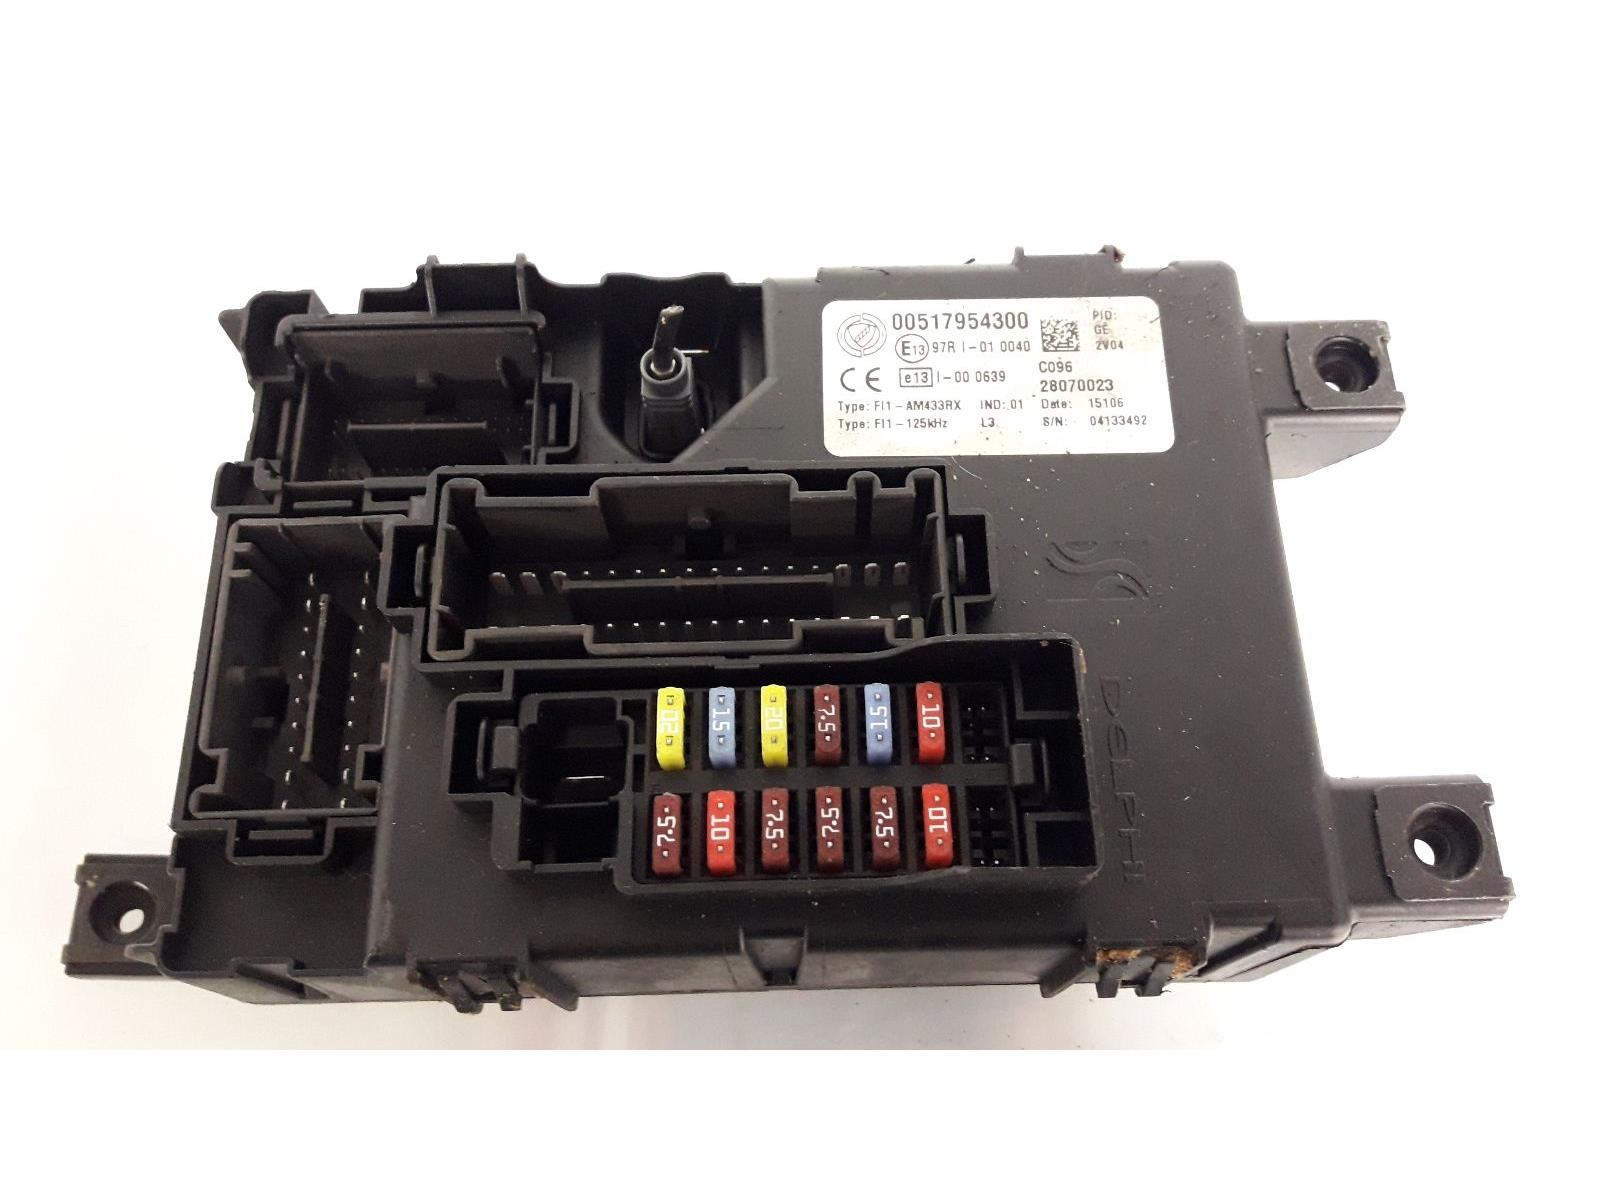 FUSE BOARD 2006 To 2008 Fiat Grande Punto Petrol Fuse Box & WARRANTY -  926245